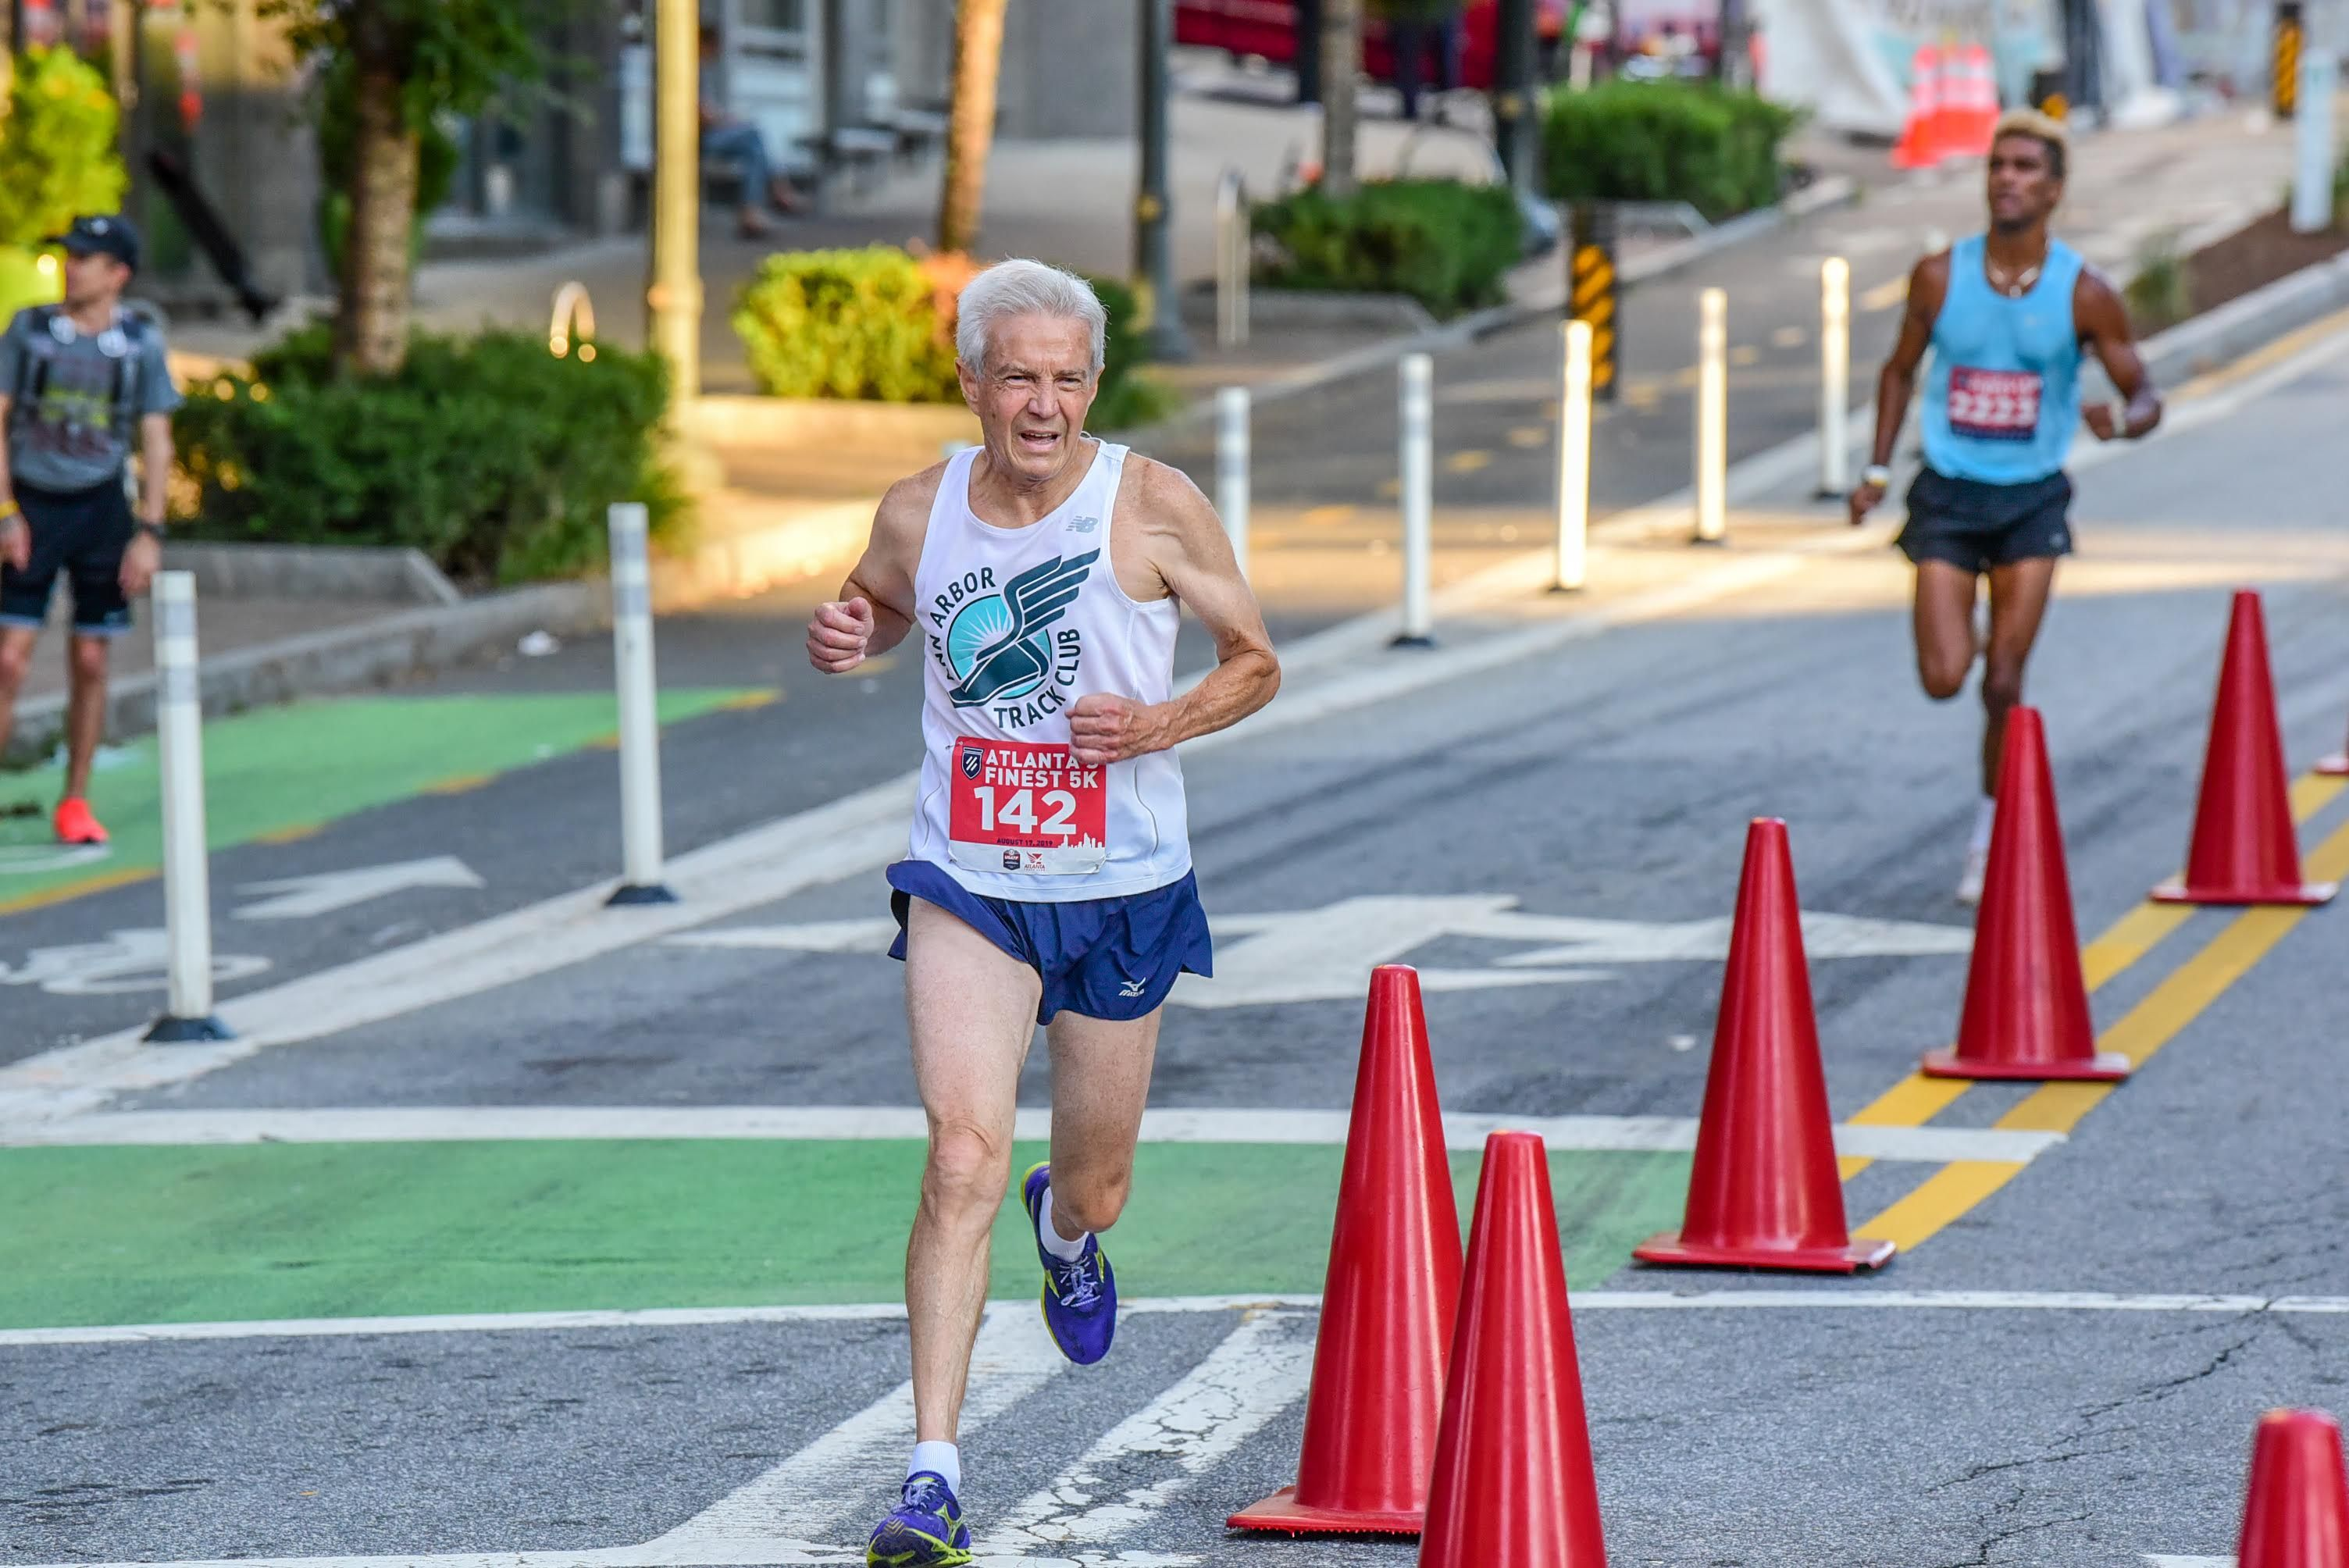 Training Tips From the Man Running Sub-7:00s at Age 77